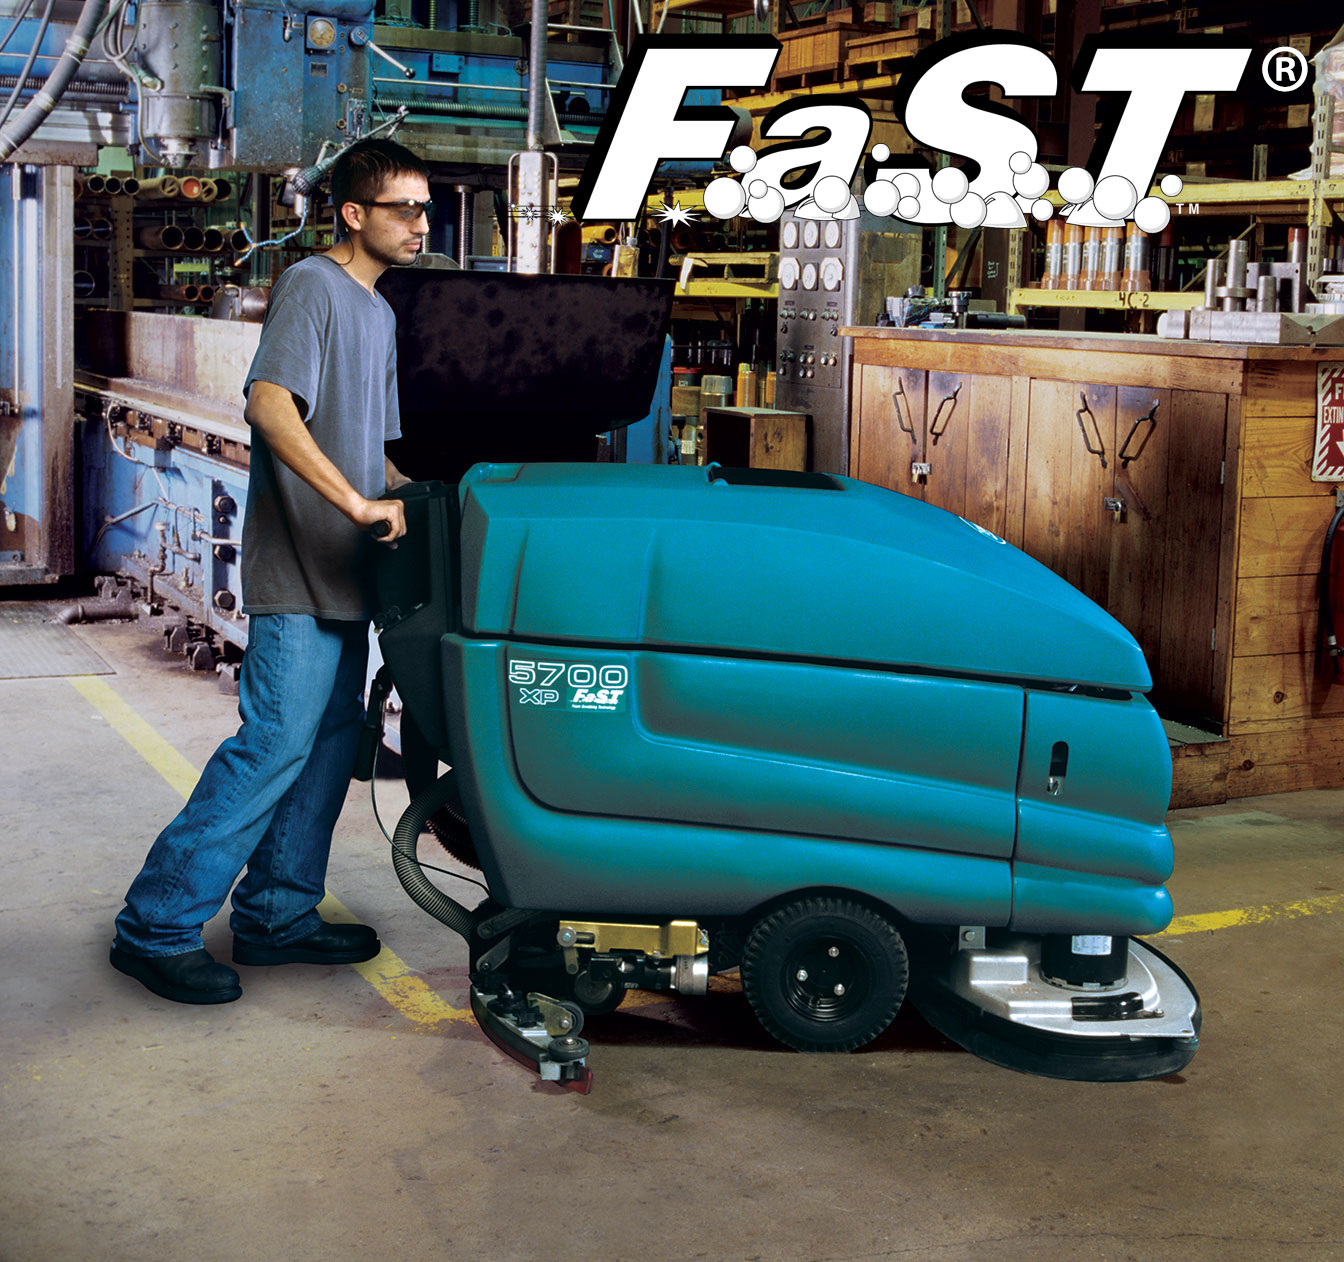 5700 Walk-Behind Scrubber with FaST Foam-activated Scrubbing Technology